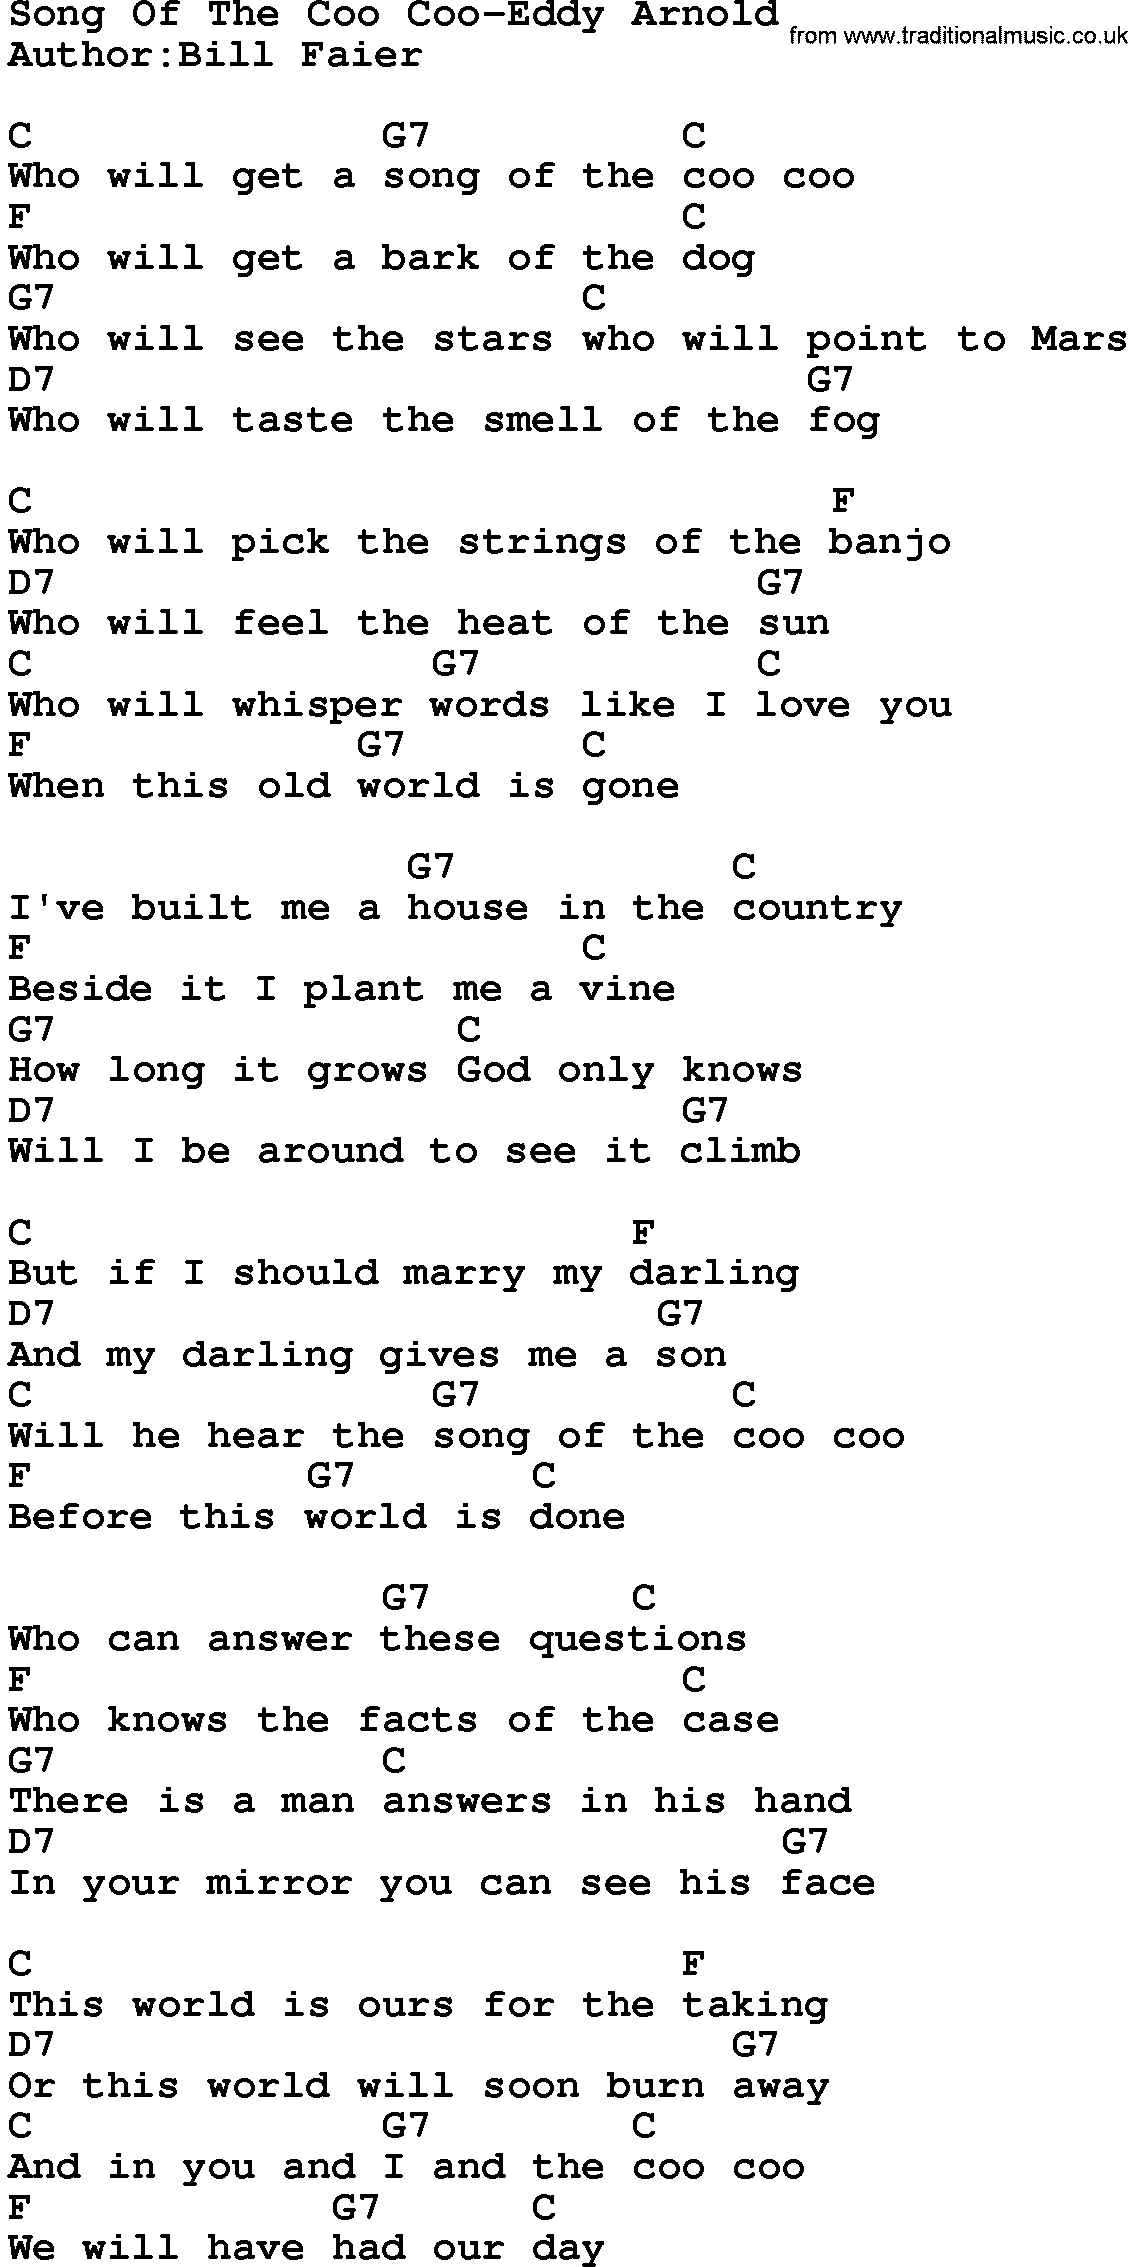 Country Musicsong Of The Coo Coo Eddy Arnold Lyrics And Chords